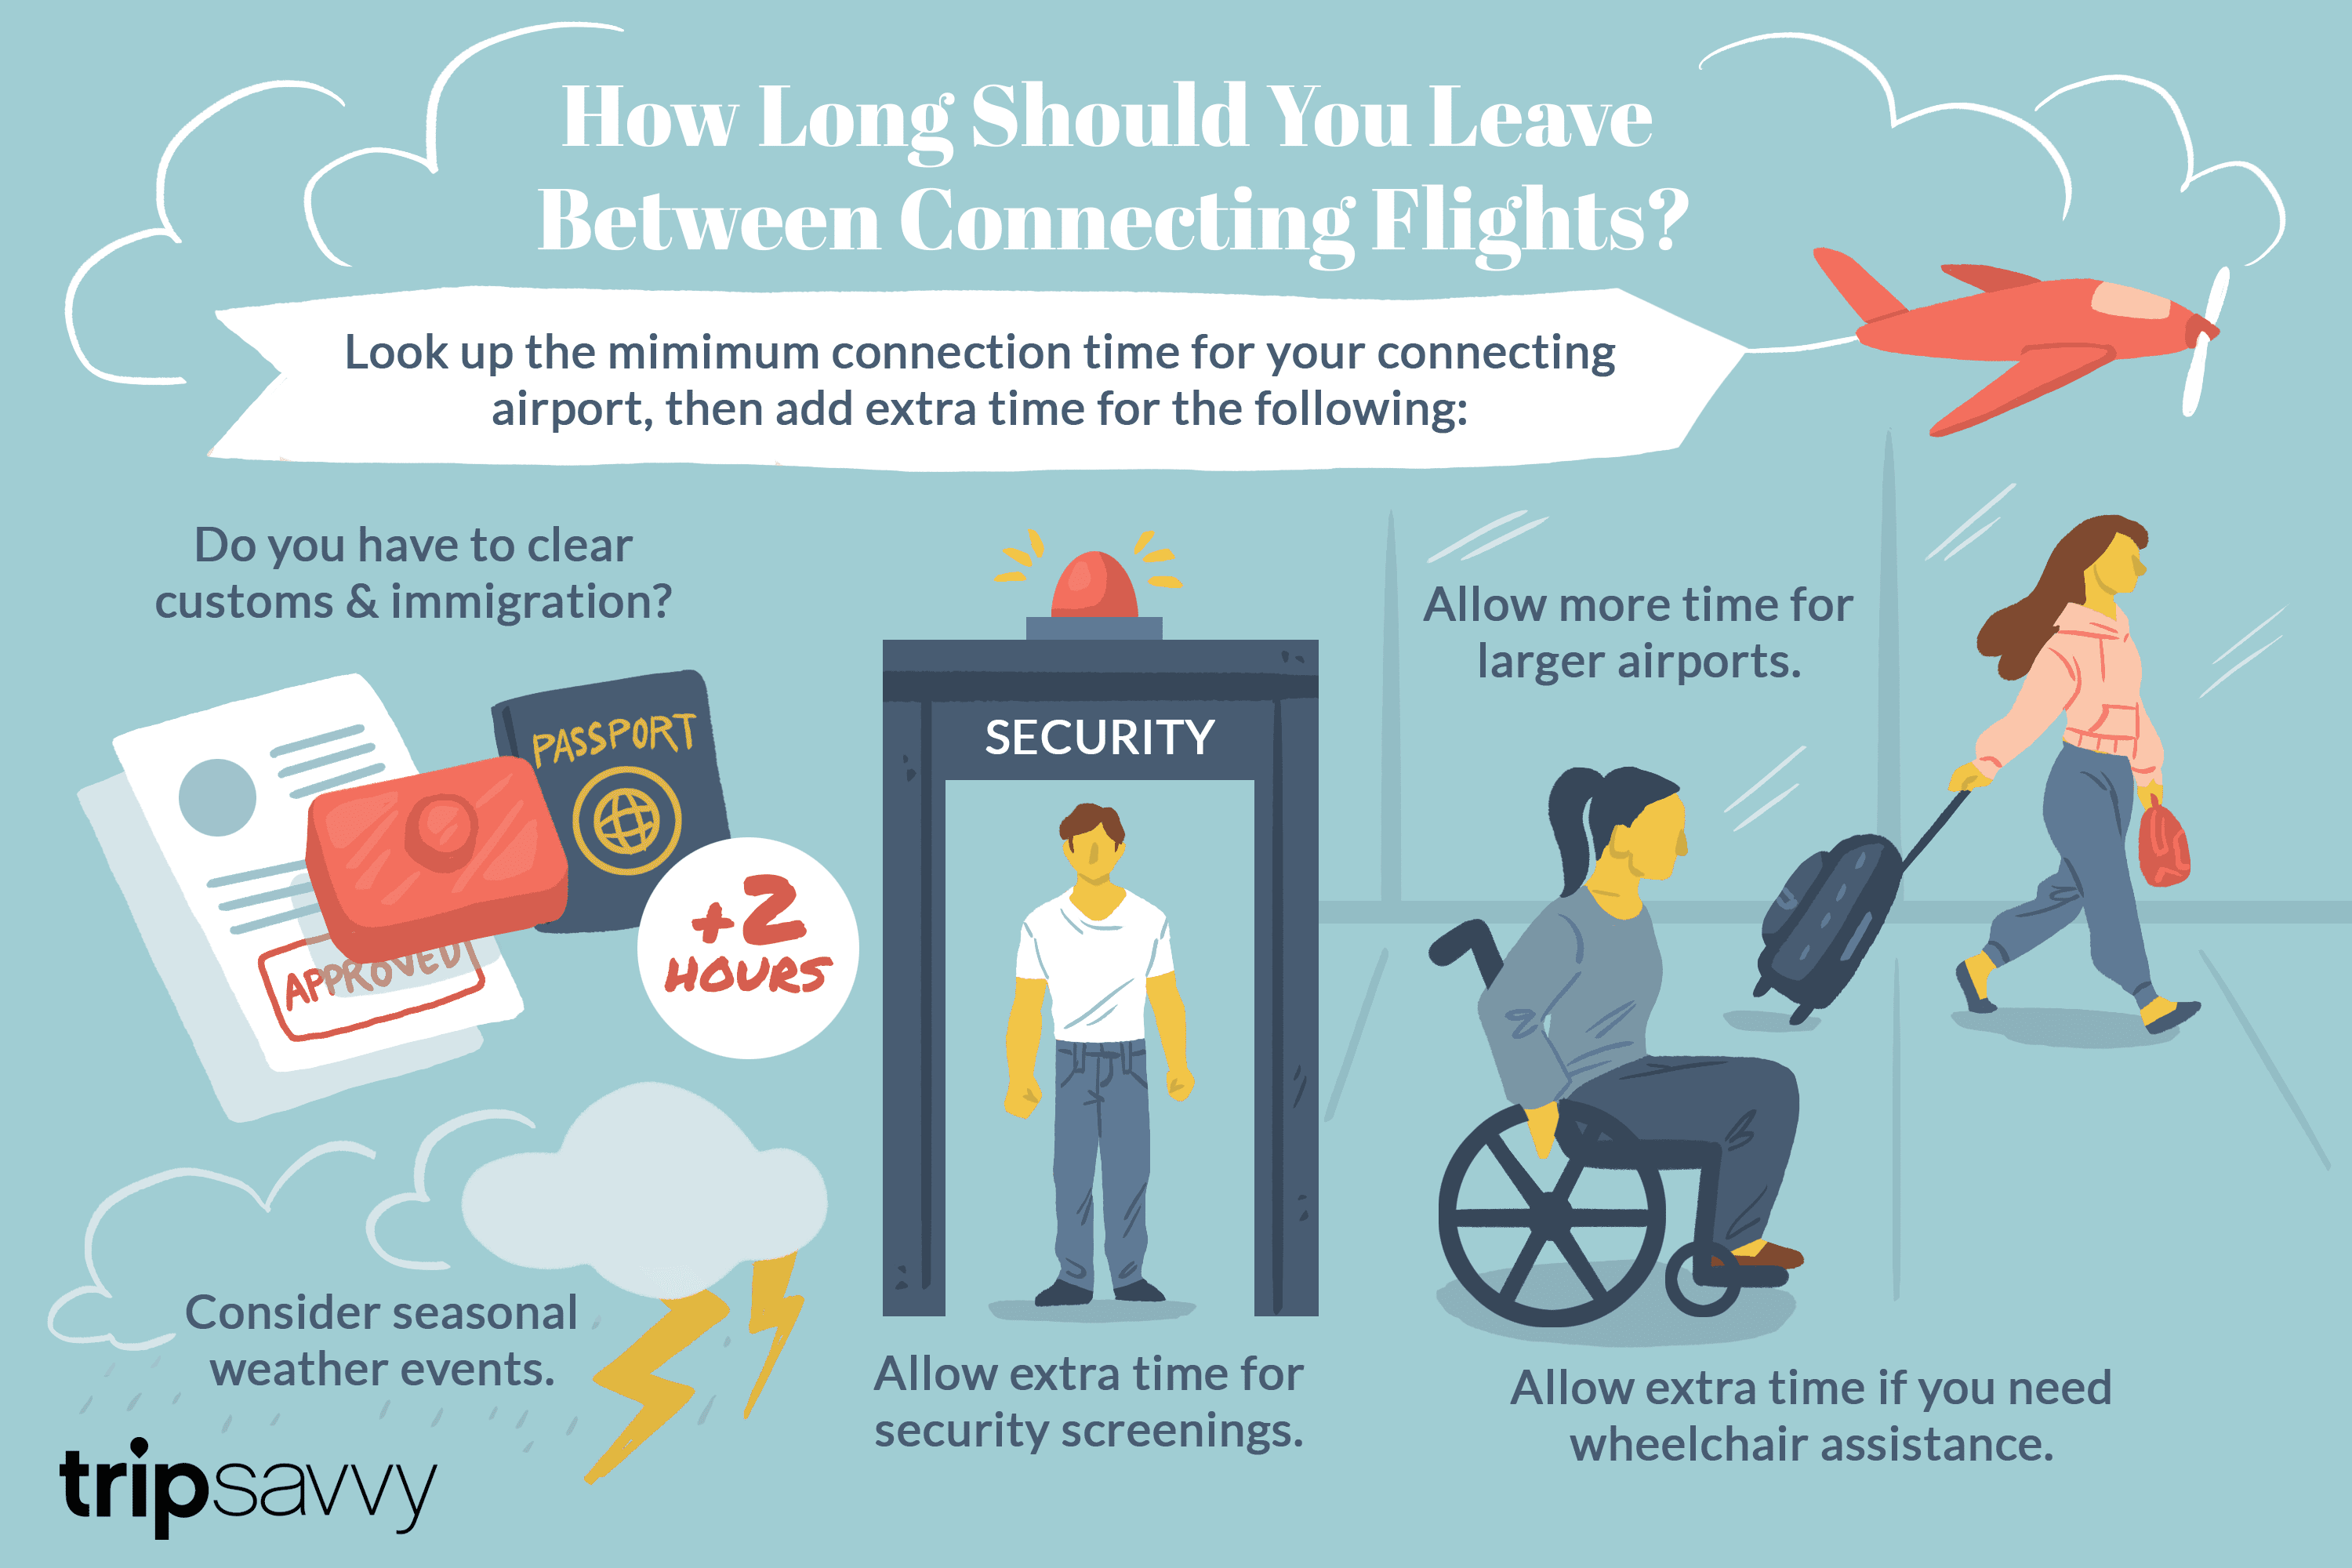 How Long Should You Leave Between Connecting Flights?